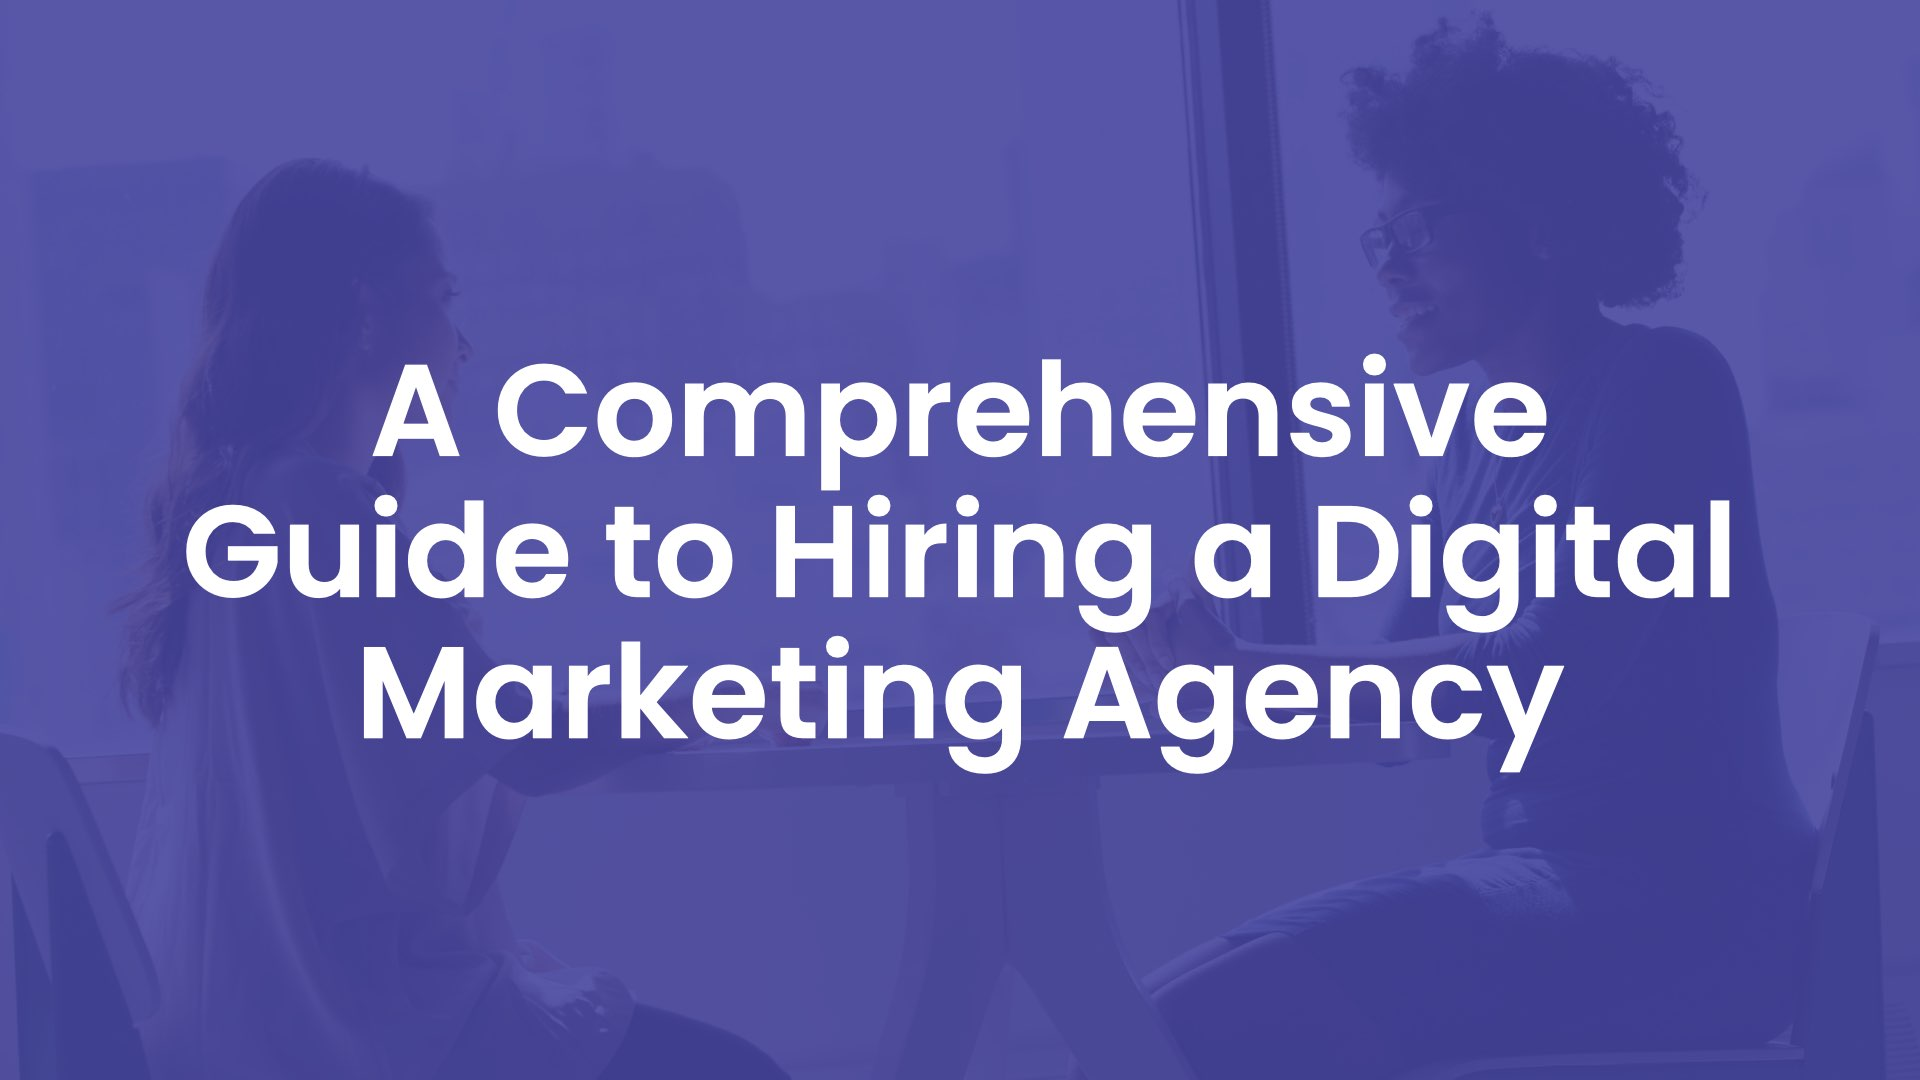 A Comprehensive Guide to Hiring a Digital Marketing Agency